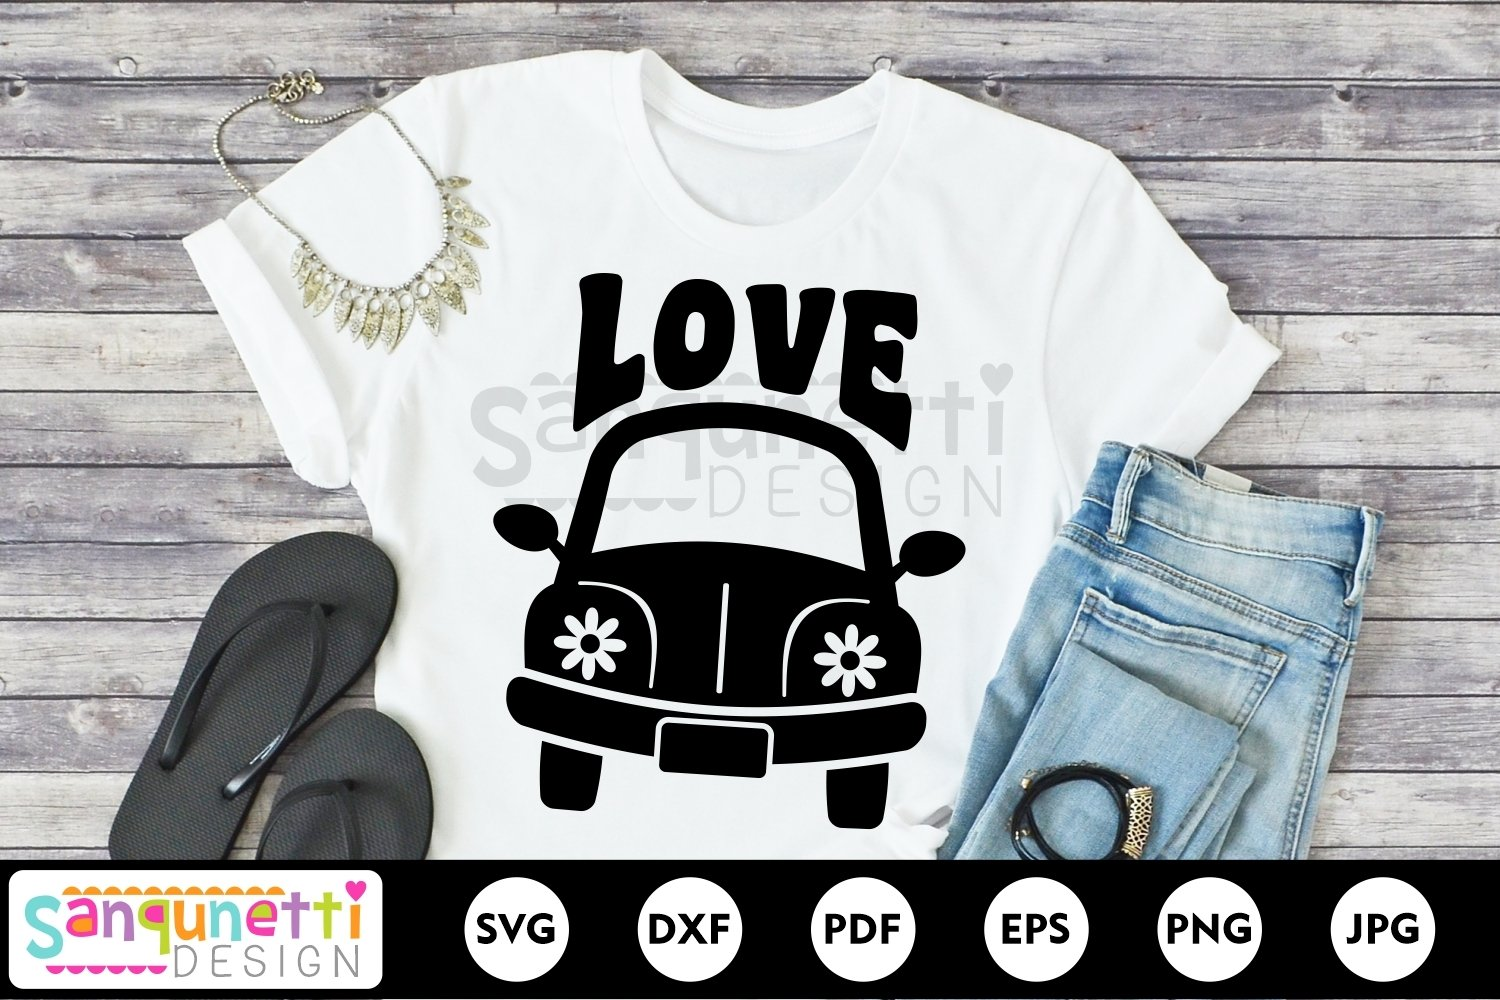 Hippie car svg, peace and love svg example image 1